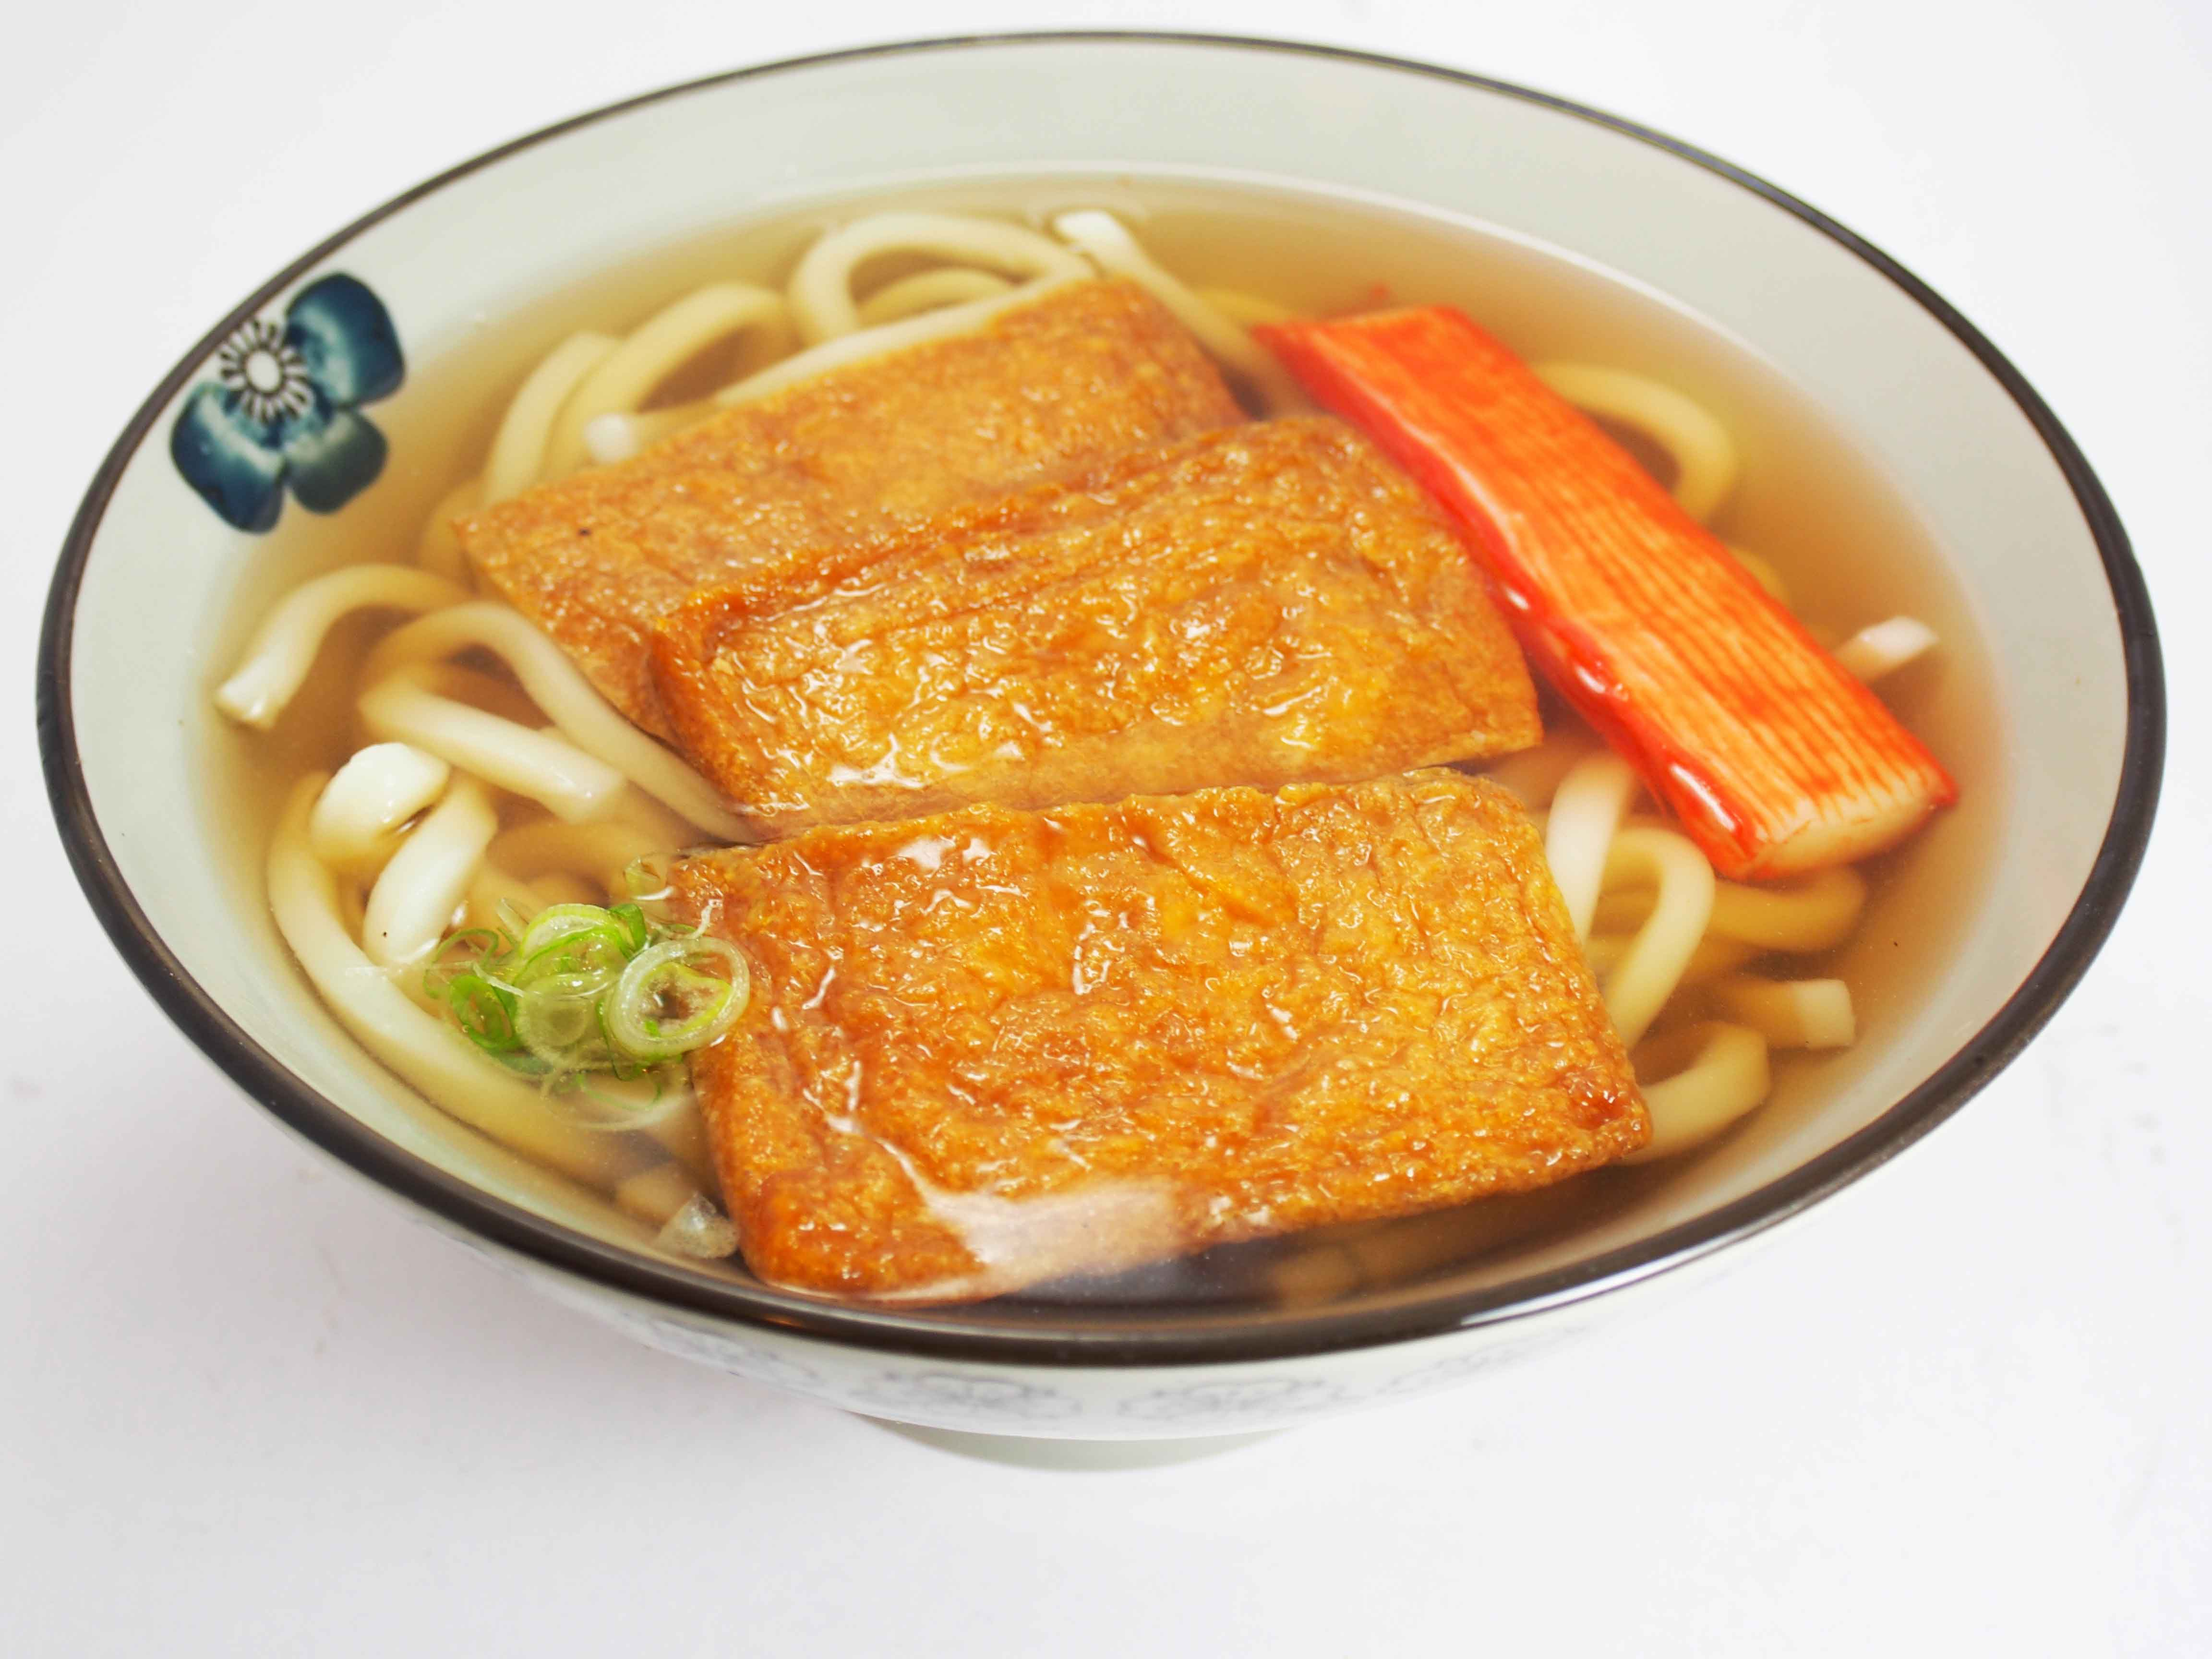 Kitsune Udon $9.50 udon noodles served in a hot clear broth with thin ...